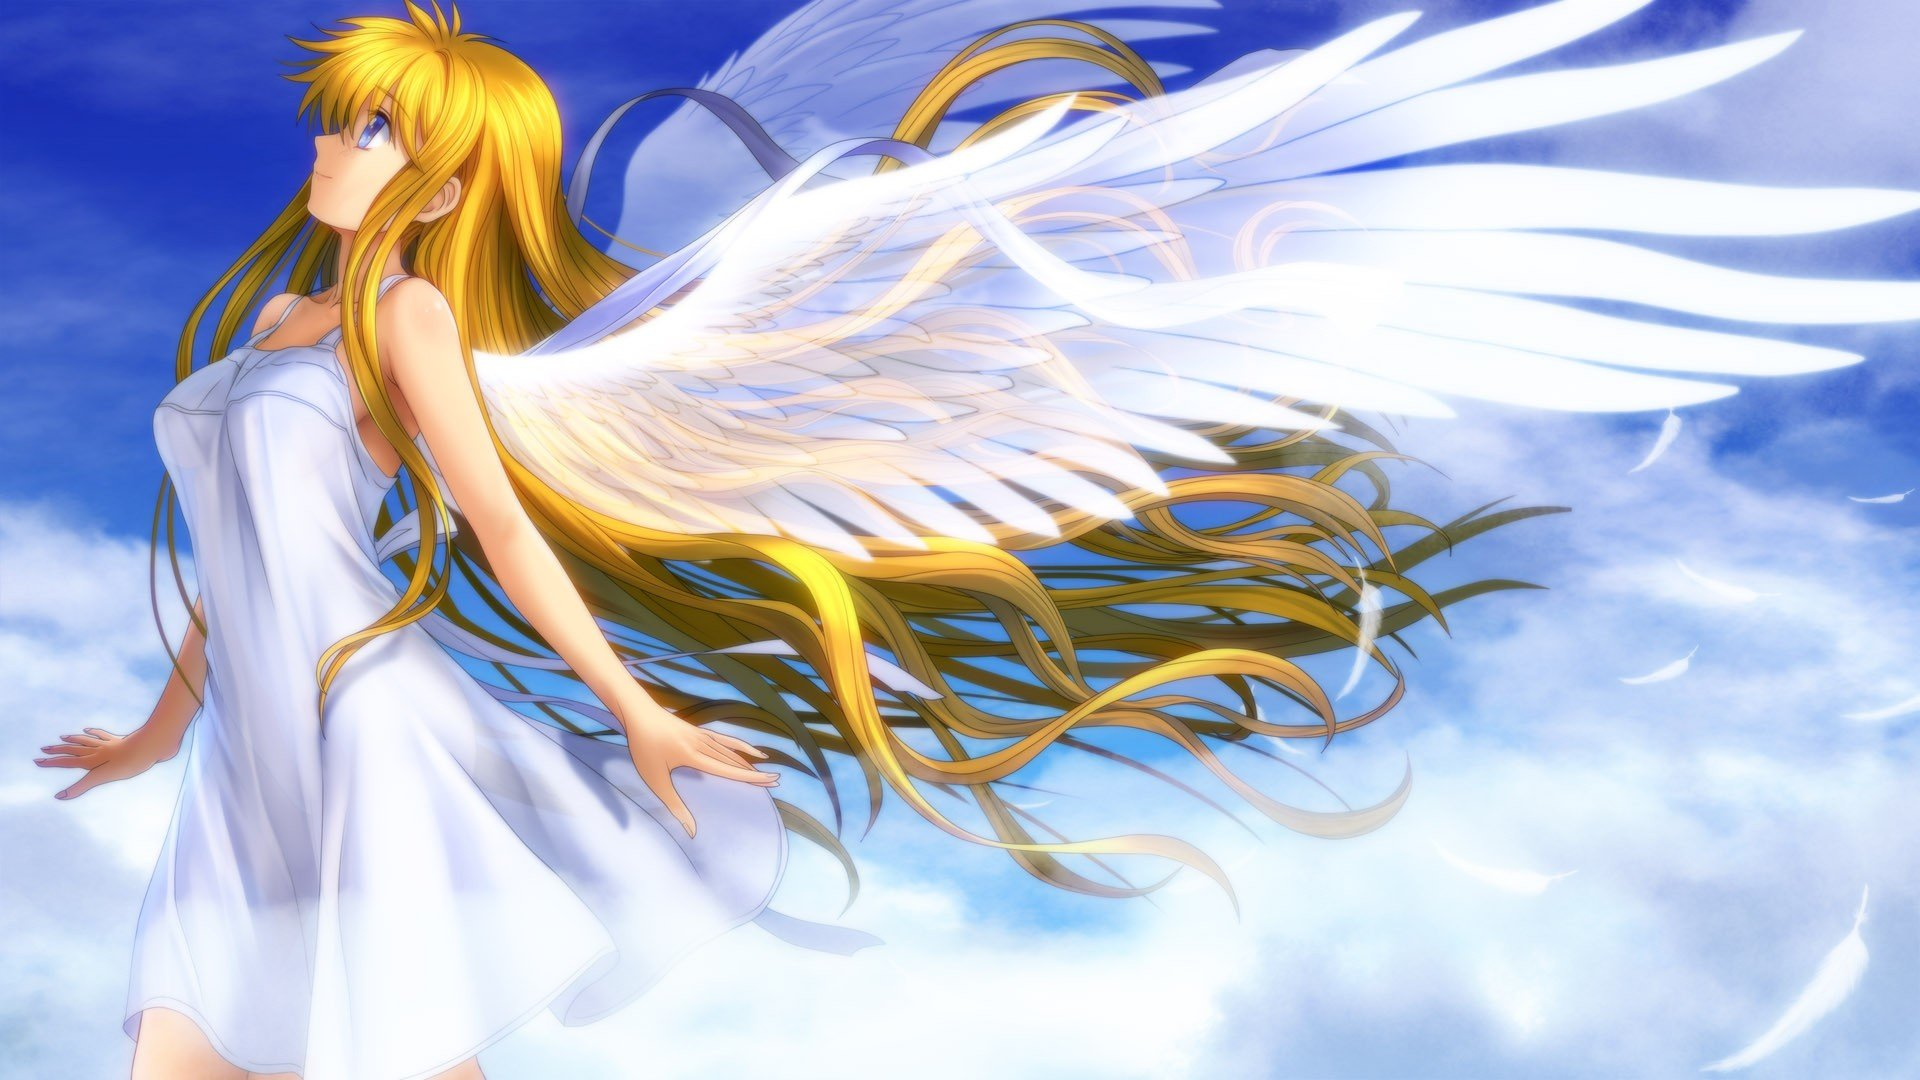 blondes video games clouds wings dress blue eyes wind long hair ...: www.wallpaperup.com/242051/blondes_video_games_clouds_wings_dress...